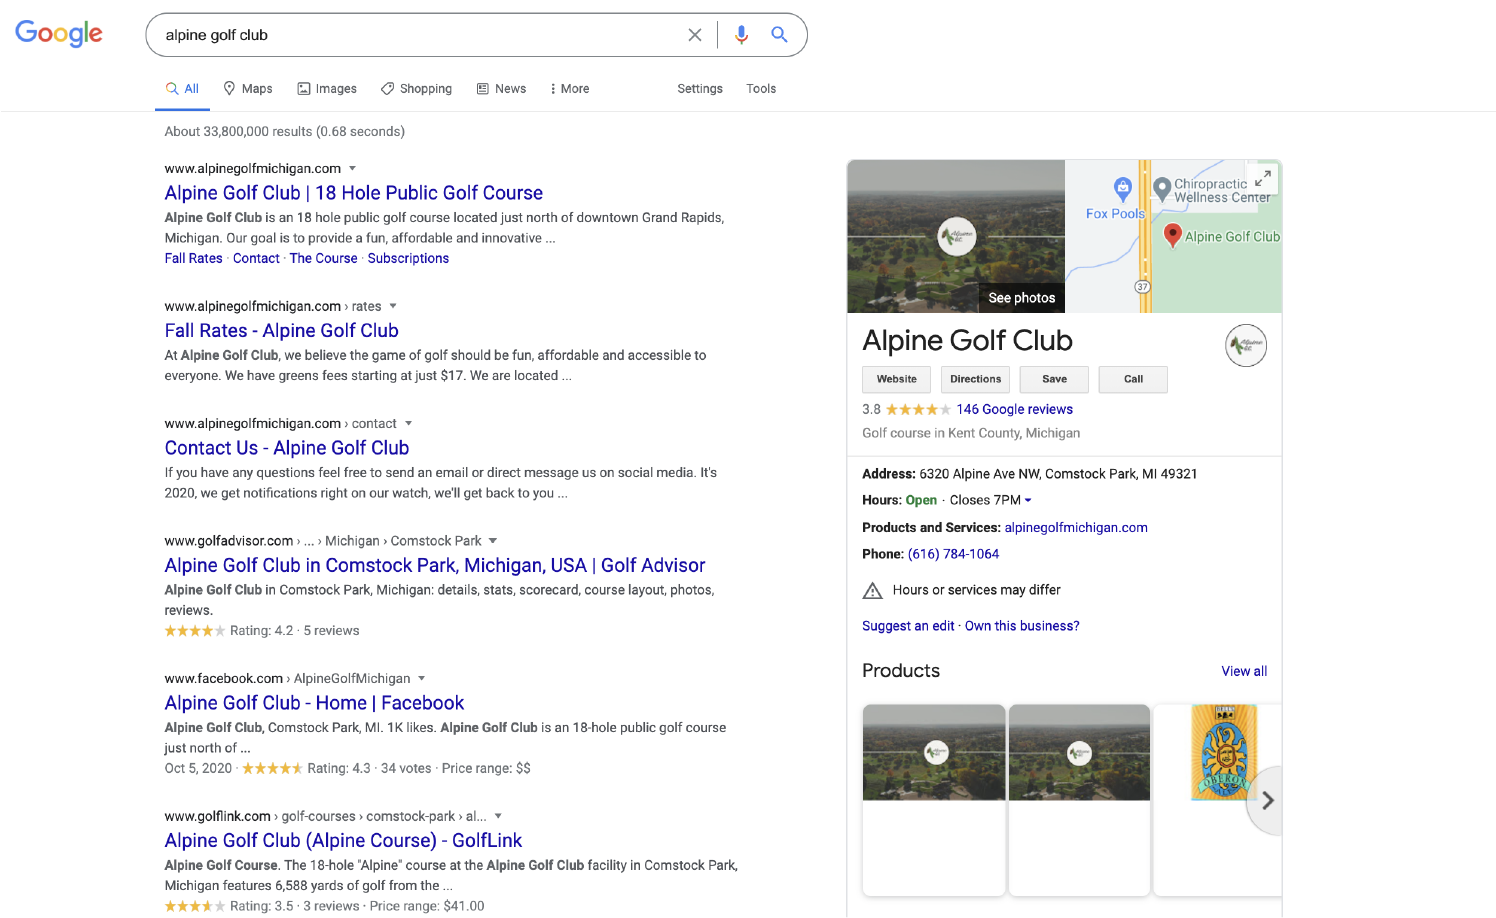 Alpine Golf Club Google My Business Profile